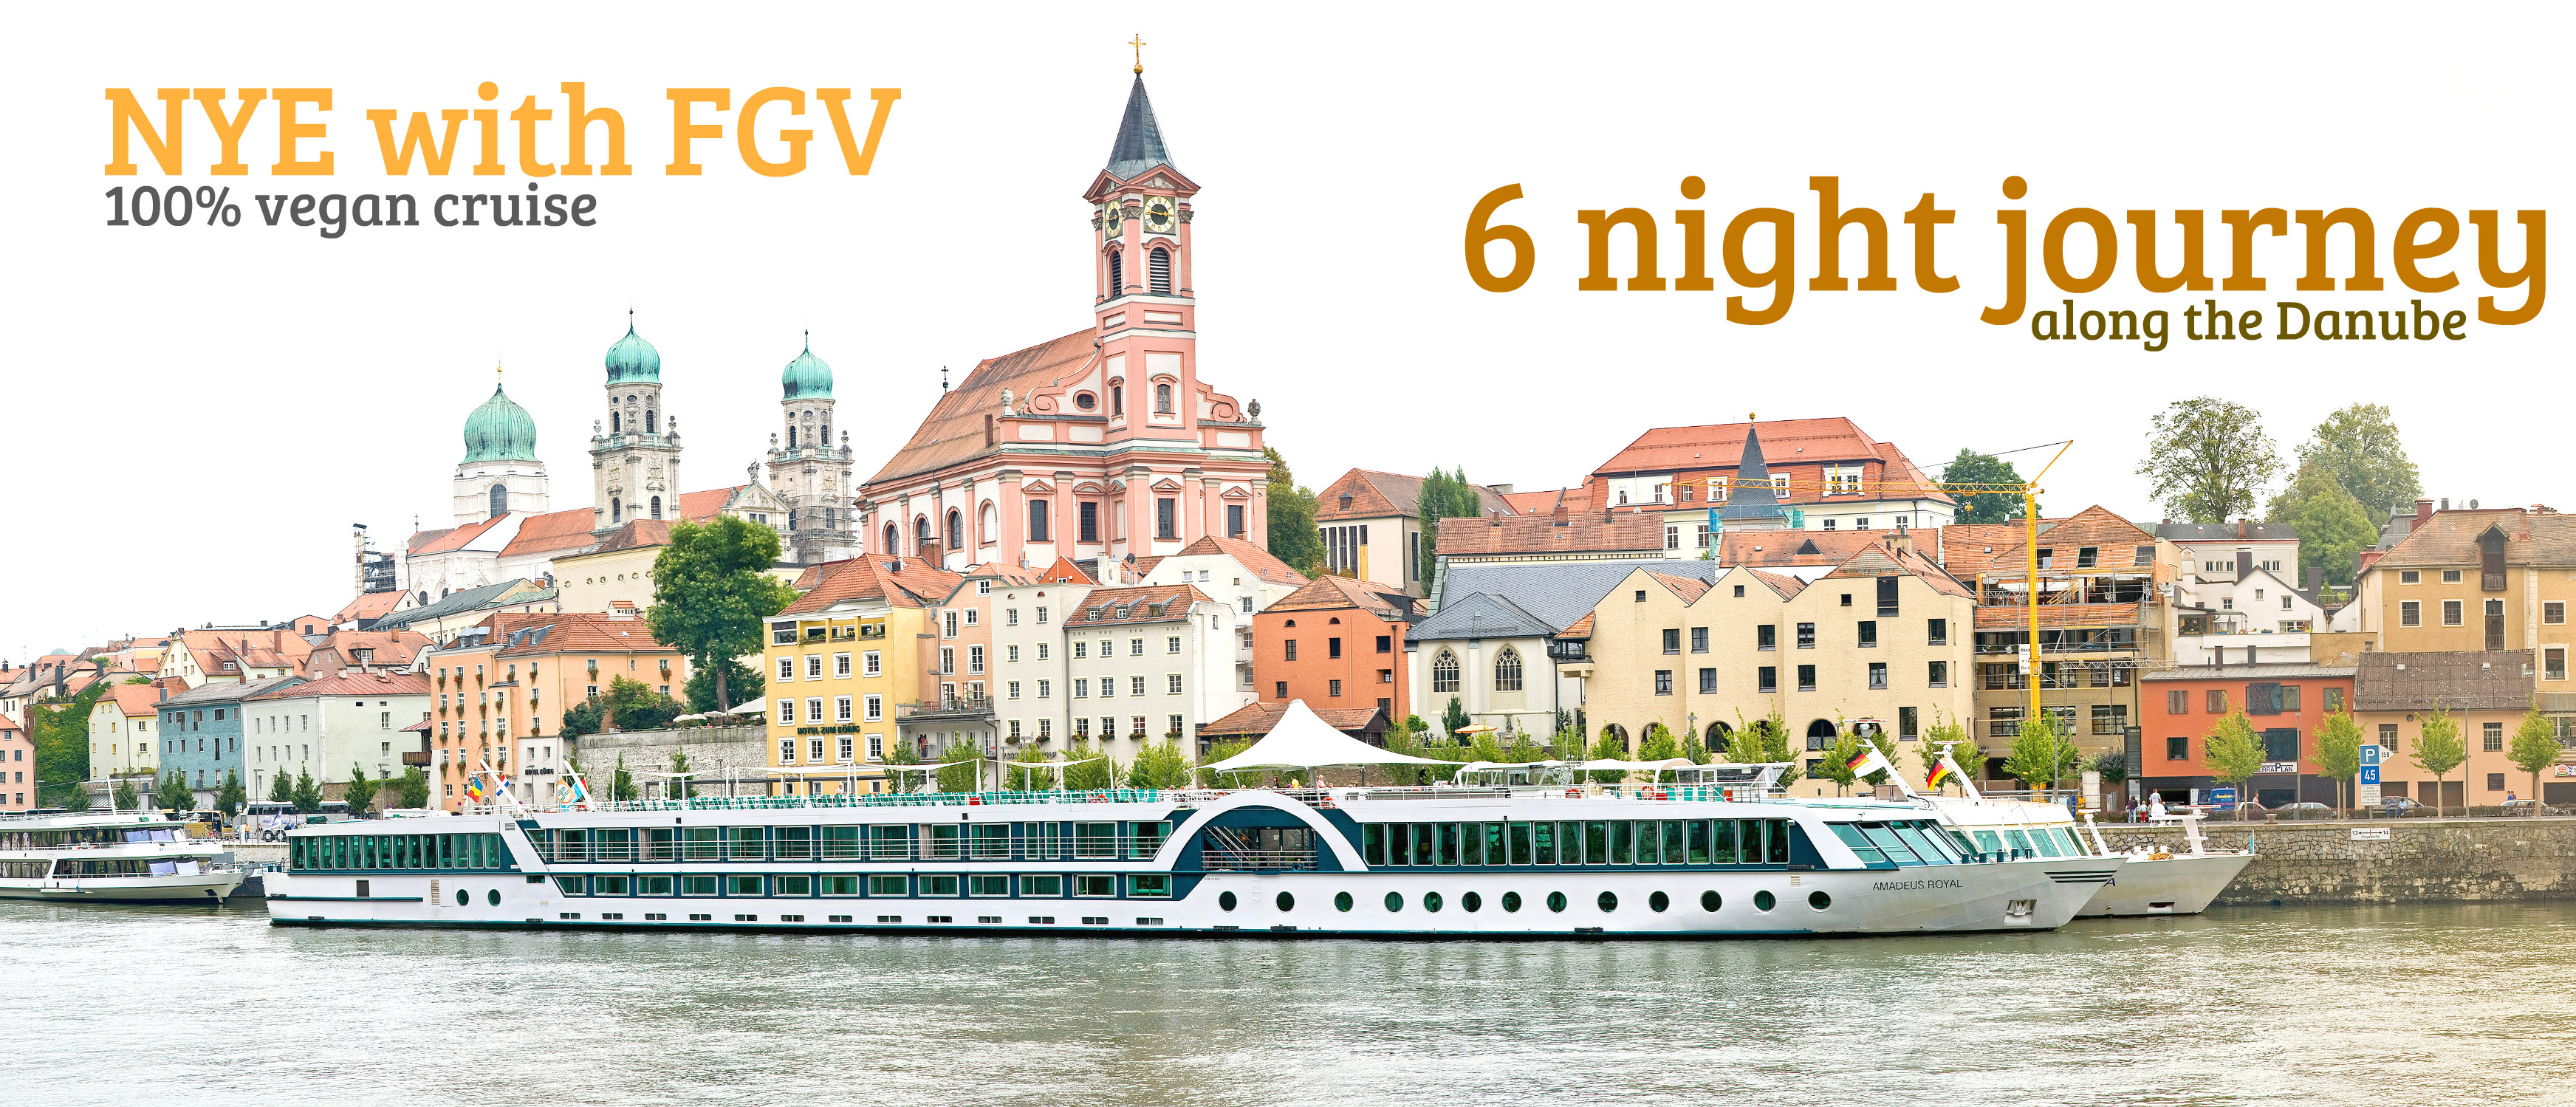 https://i1.wp.com/fatgayvegan.com/wp-content/uploads/2015/08/nye-boat-passau-vegan.jpg?fit=3488%2C1499